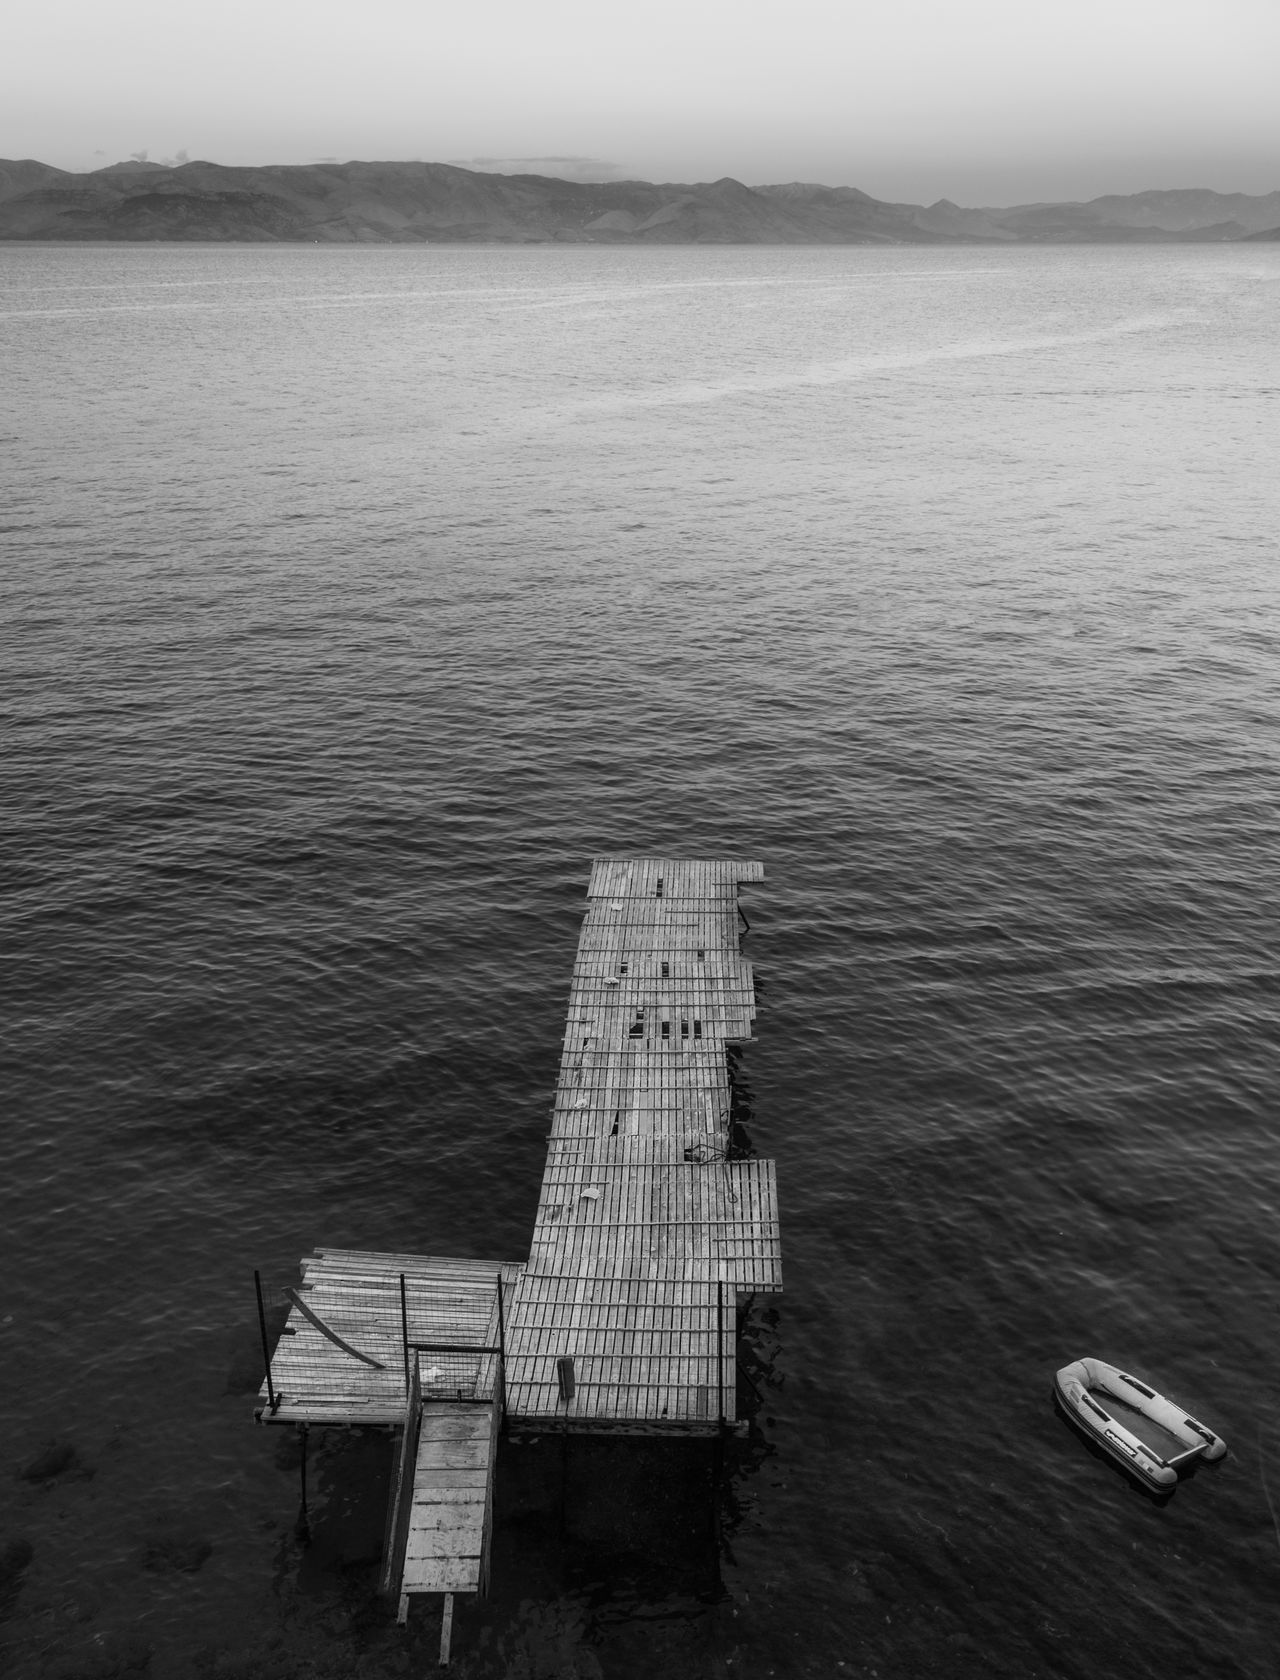 B&w Beauty In Nature Black And White Boat Corfu Town Day Dreamy Dusk Floating Greek Islands Lonely Mediterranean  Nature No People Outdoors Raft Rubber Raft Scenics Sea Sehnsucht Sunset Tranquil Scene Wanderlust Water Wharf